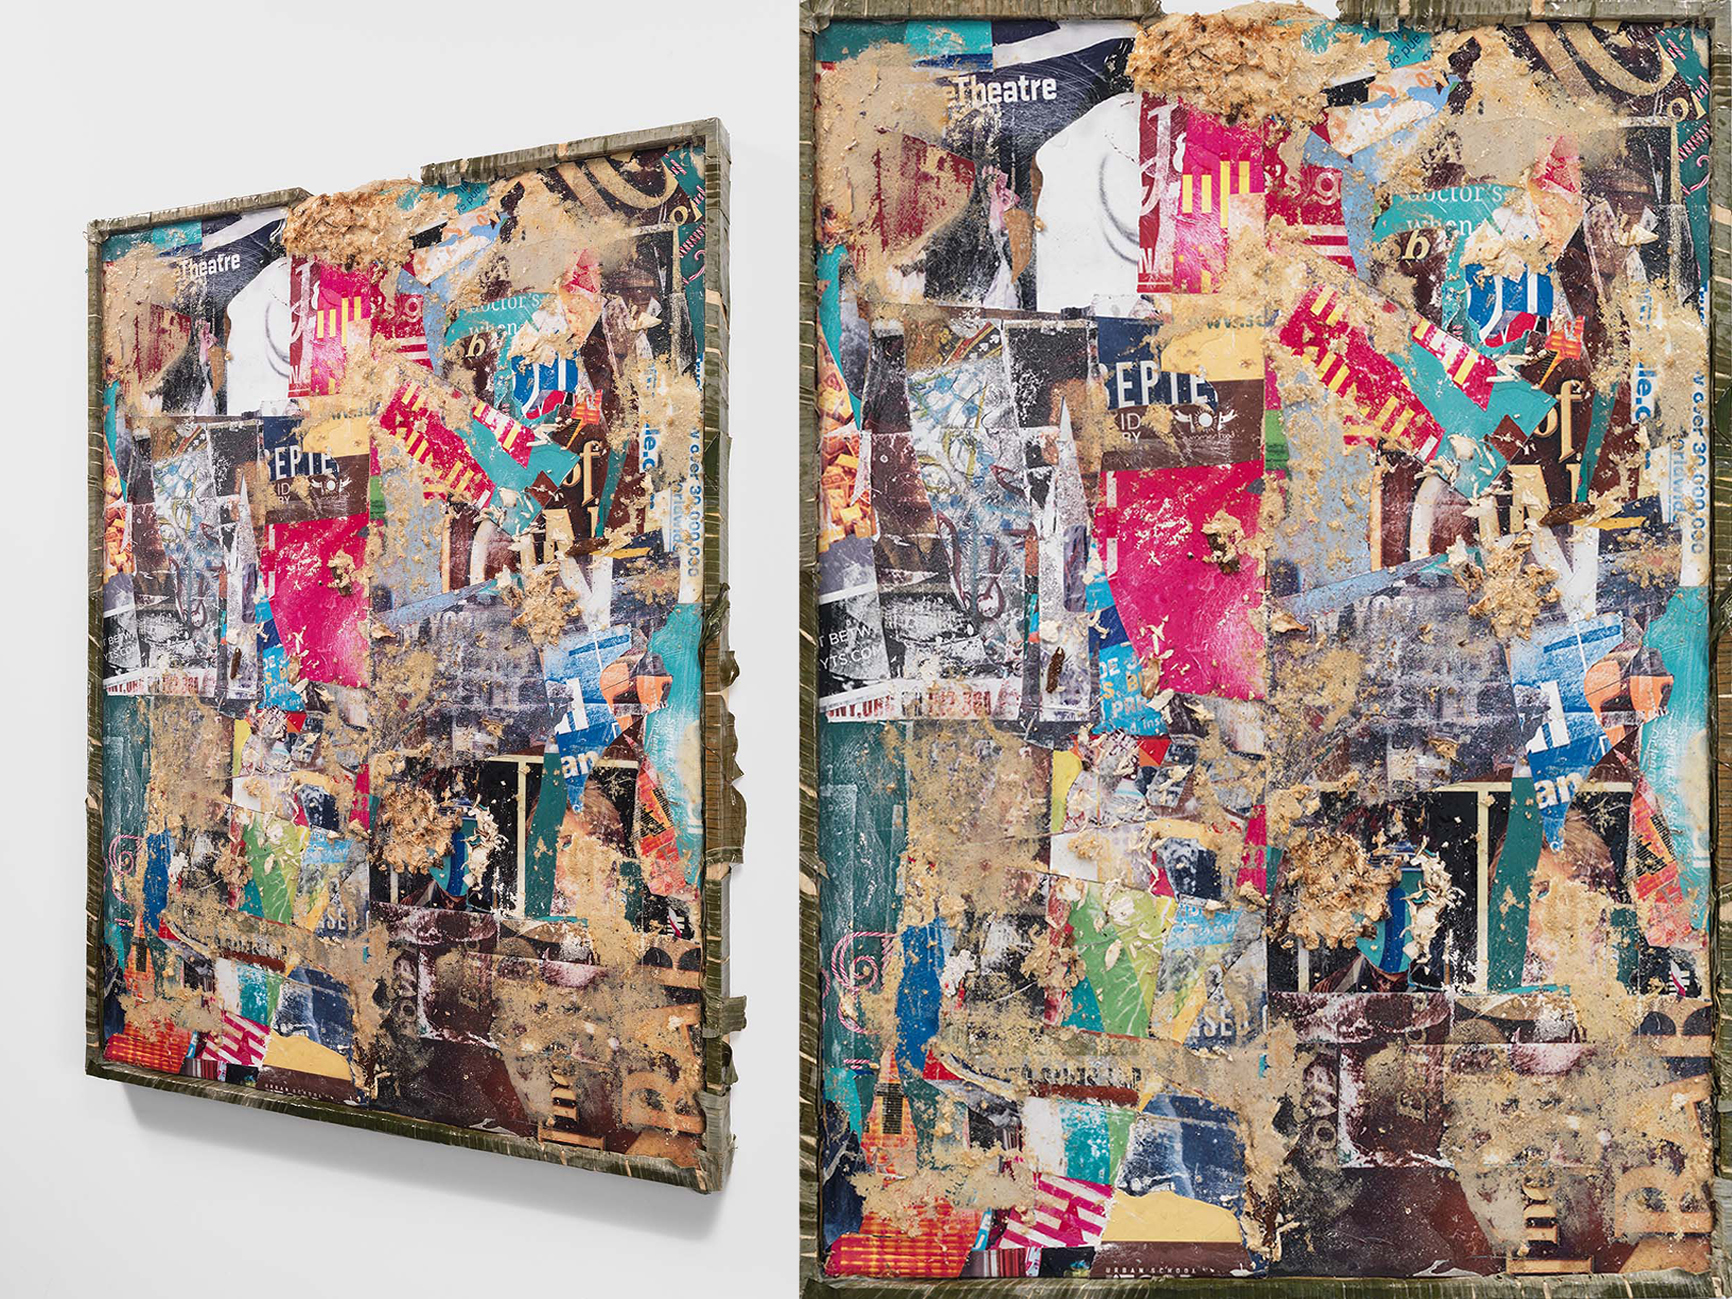 """Eye Level (after Stuart Davis)""   Yucca and epoxy resin on found billboard advertisements; banana leaves and epoxy resin on wood  49¼ x 37¾ x 2½ in.  2016"